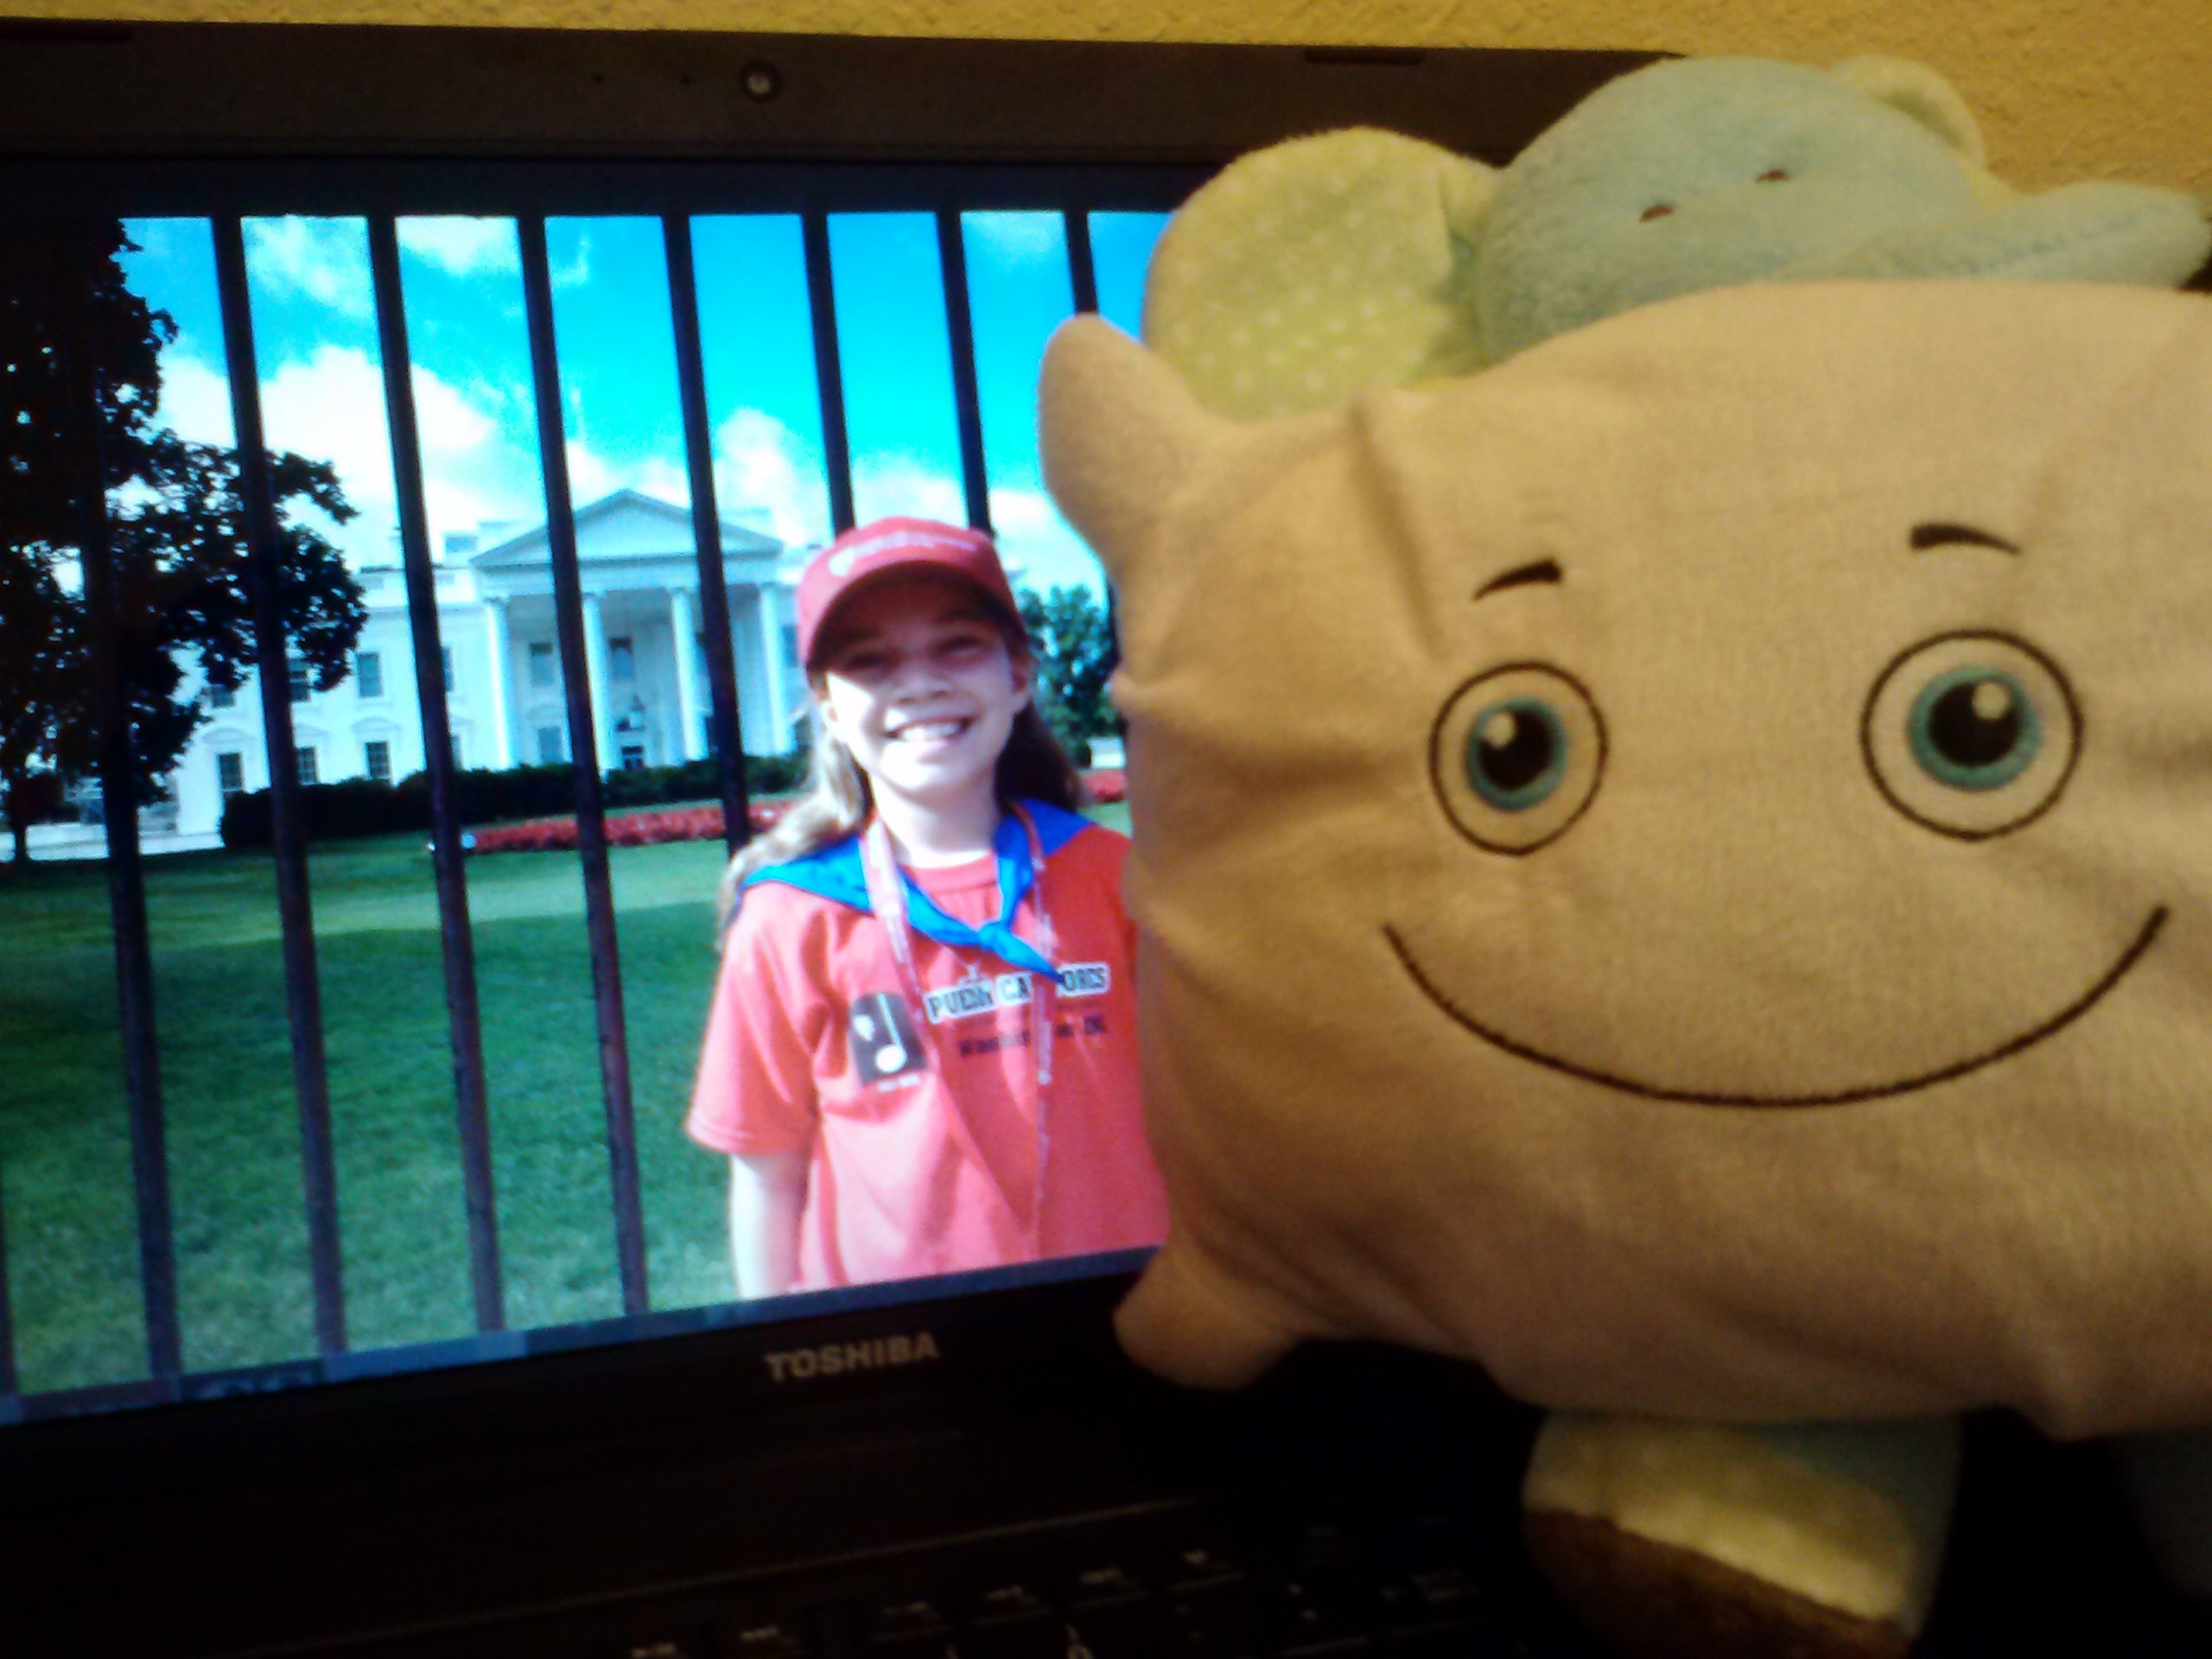 McStuffy missed his sister's trip to Washington, but he has pictures!